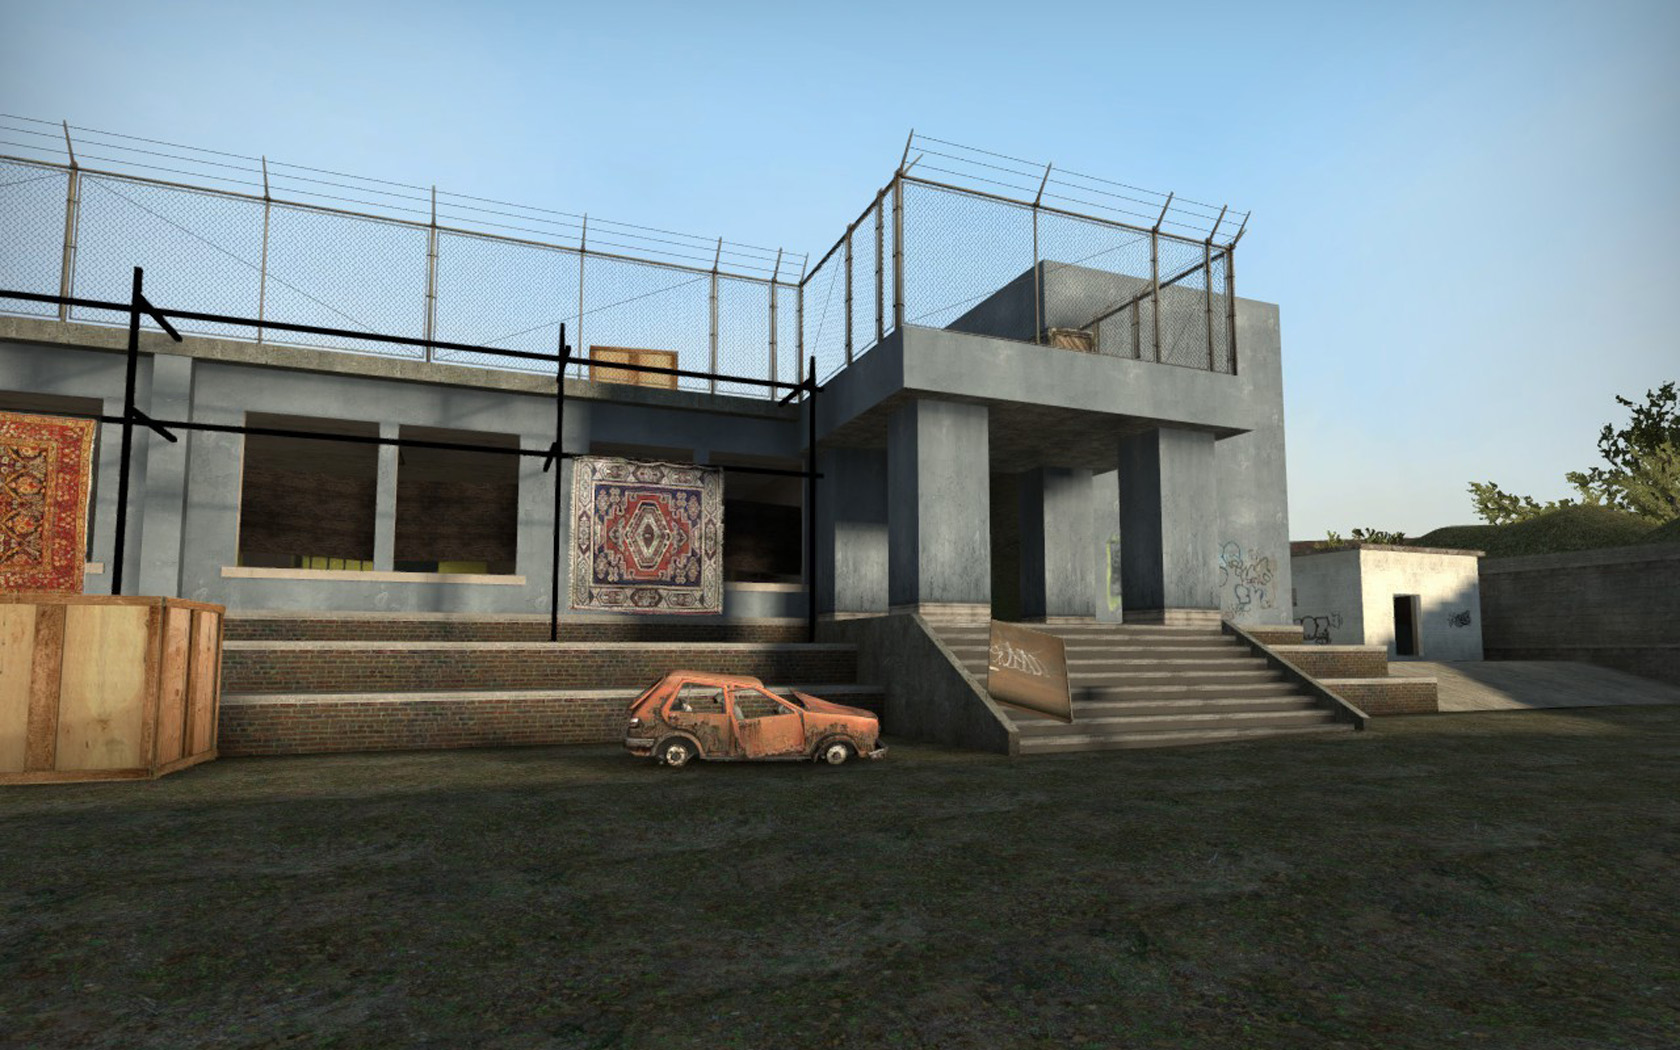 counter-strike.biz-maps-csgo-cs-camouflage-scr-01